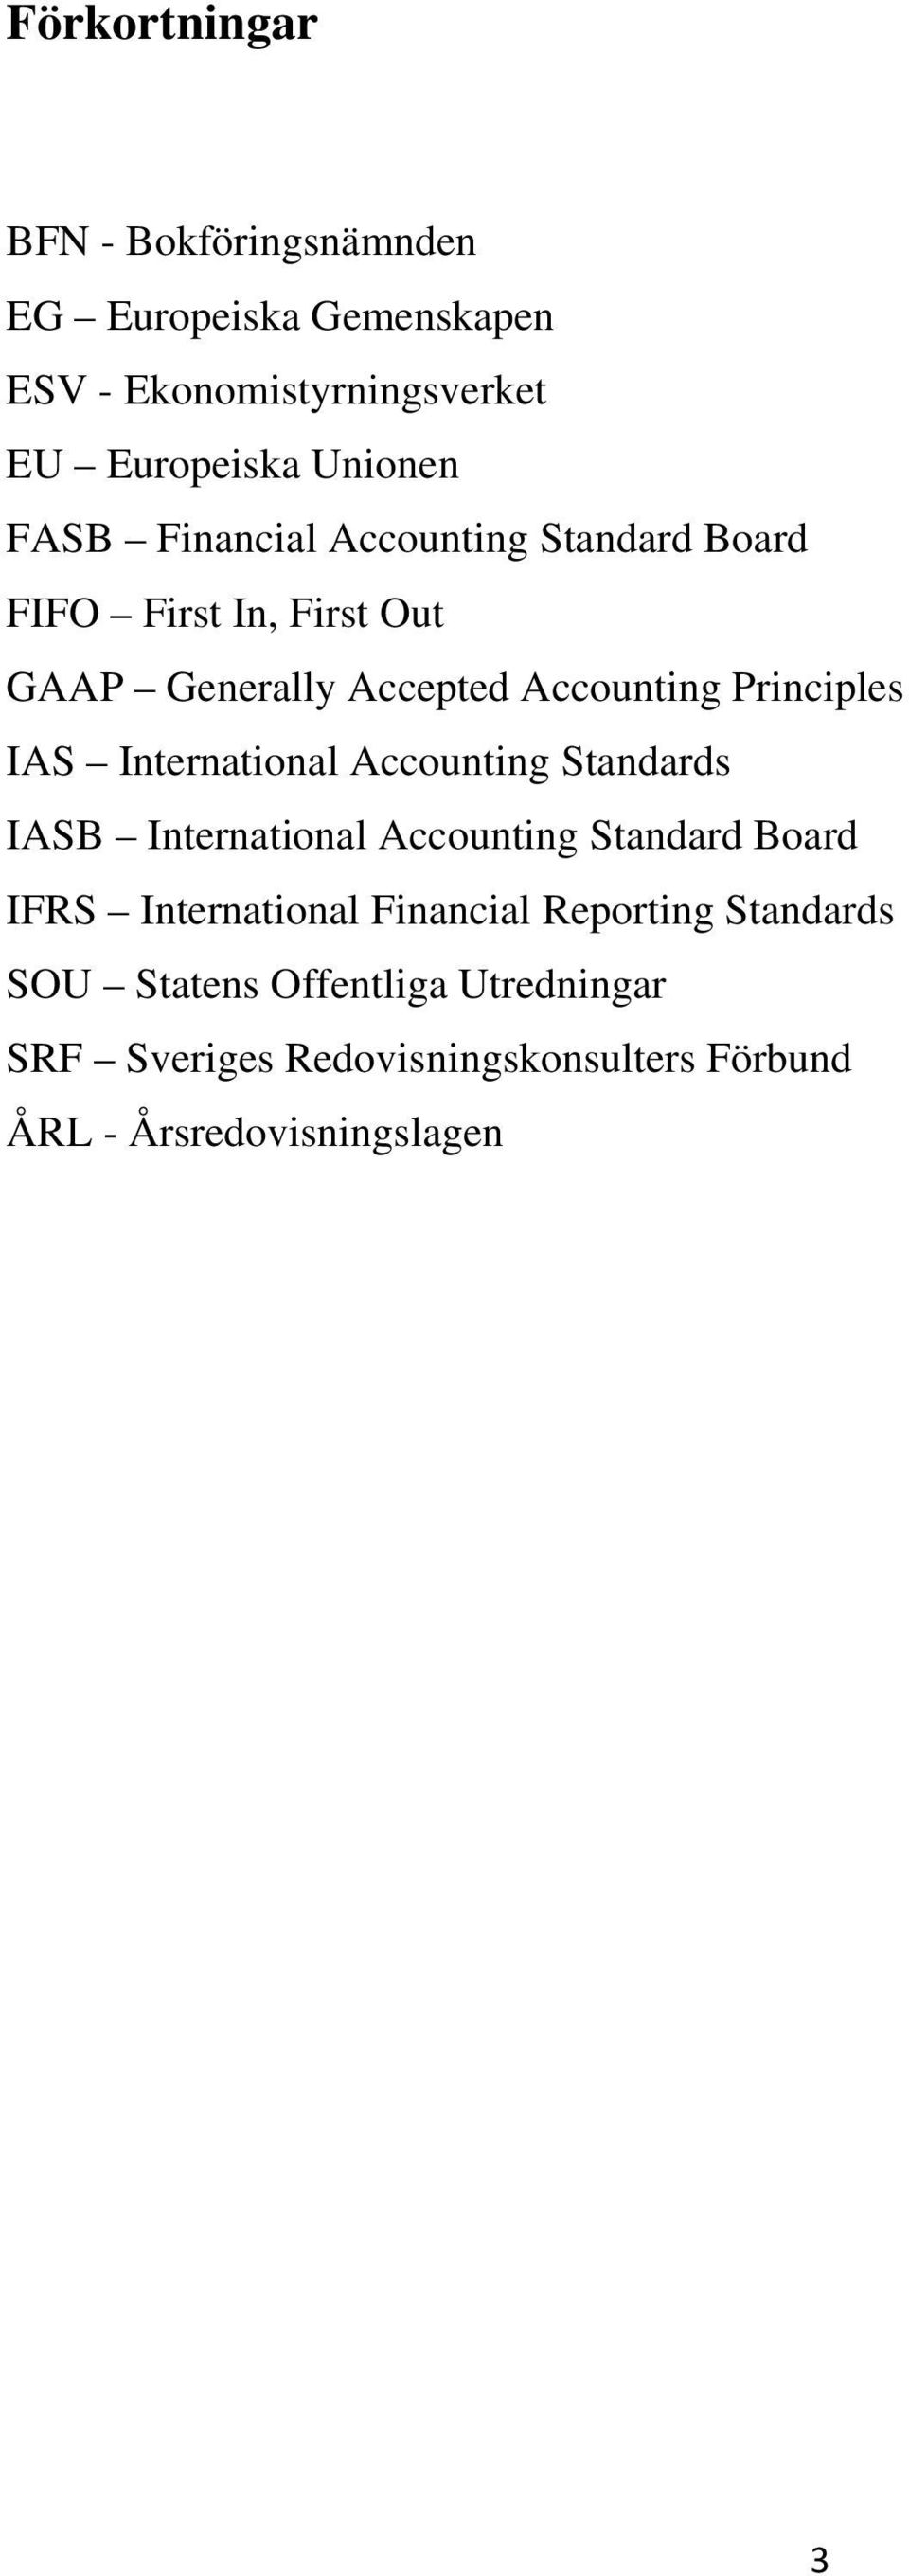 International Accounting Standards IASB International Accounting Standard Board IFRS International Financial